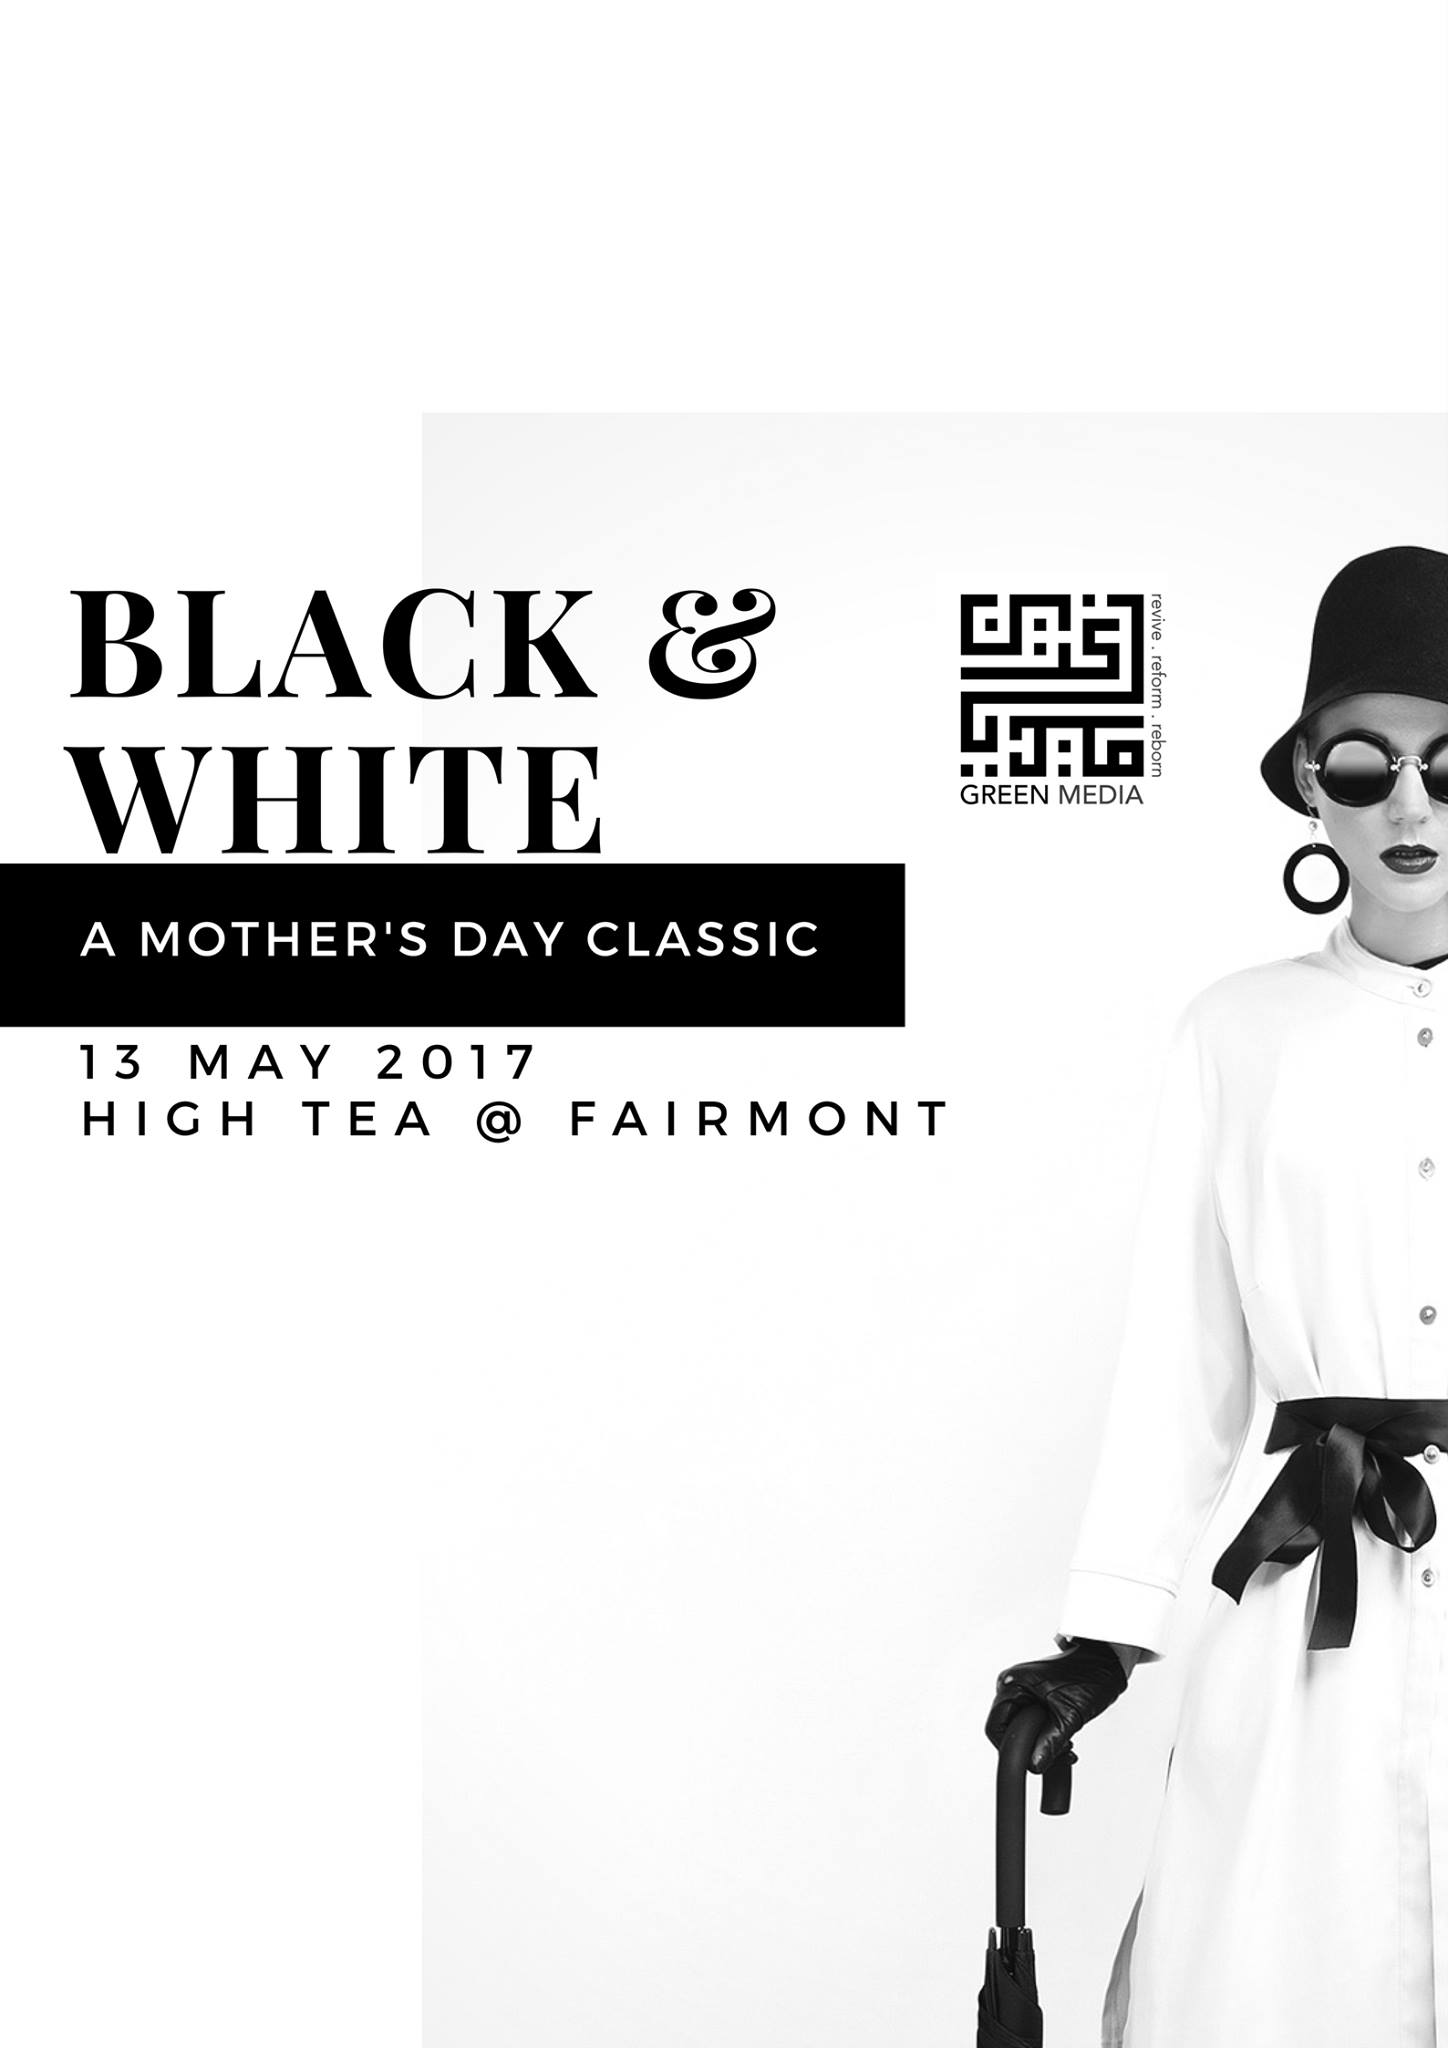 Black & White - A Mother's Day Classic Singapore May Events 2017